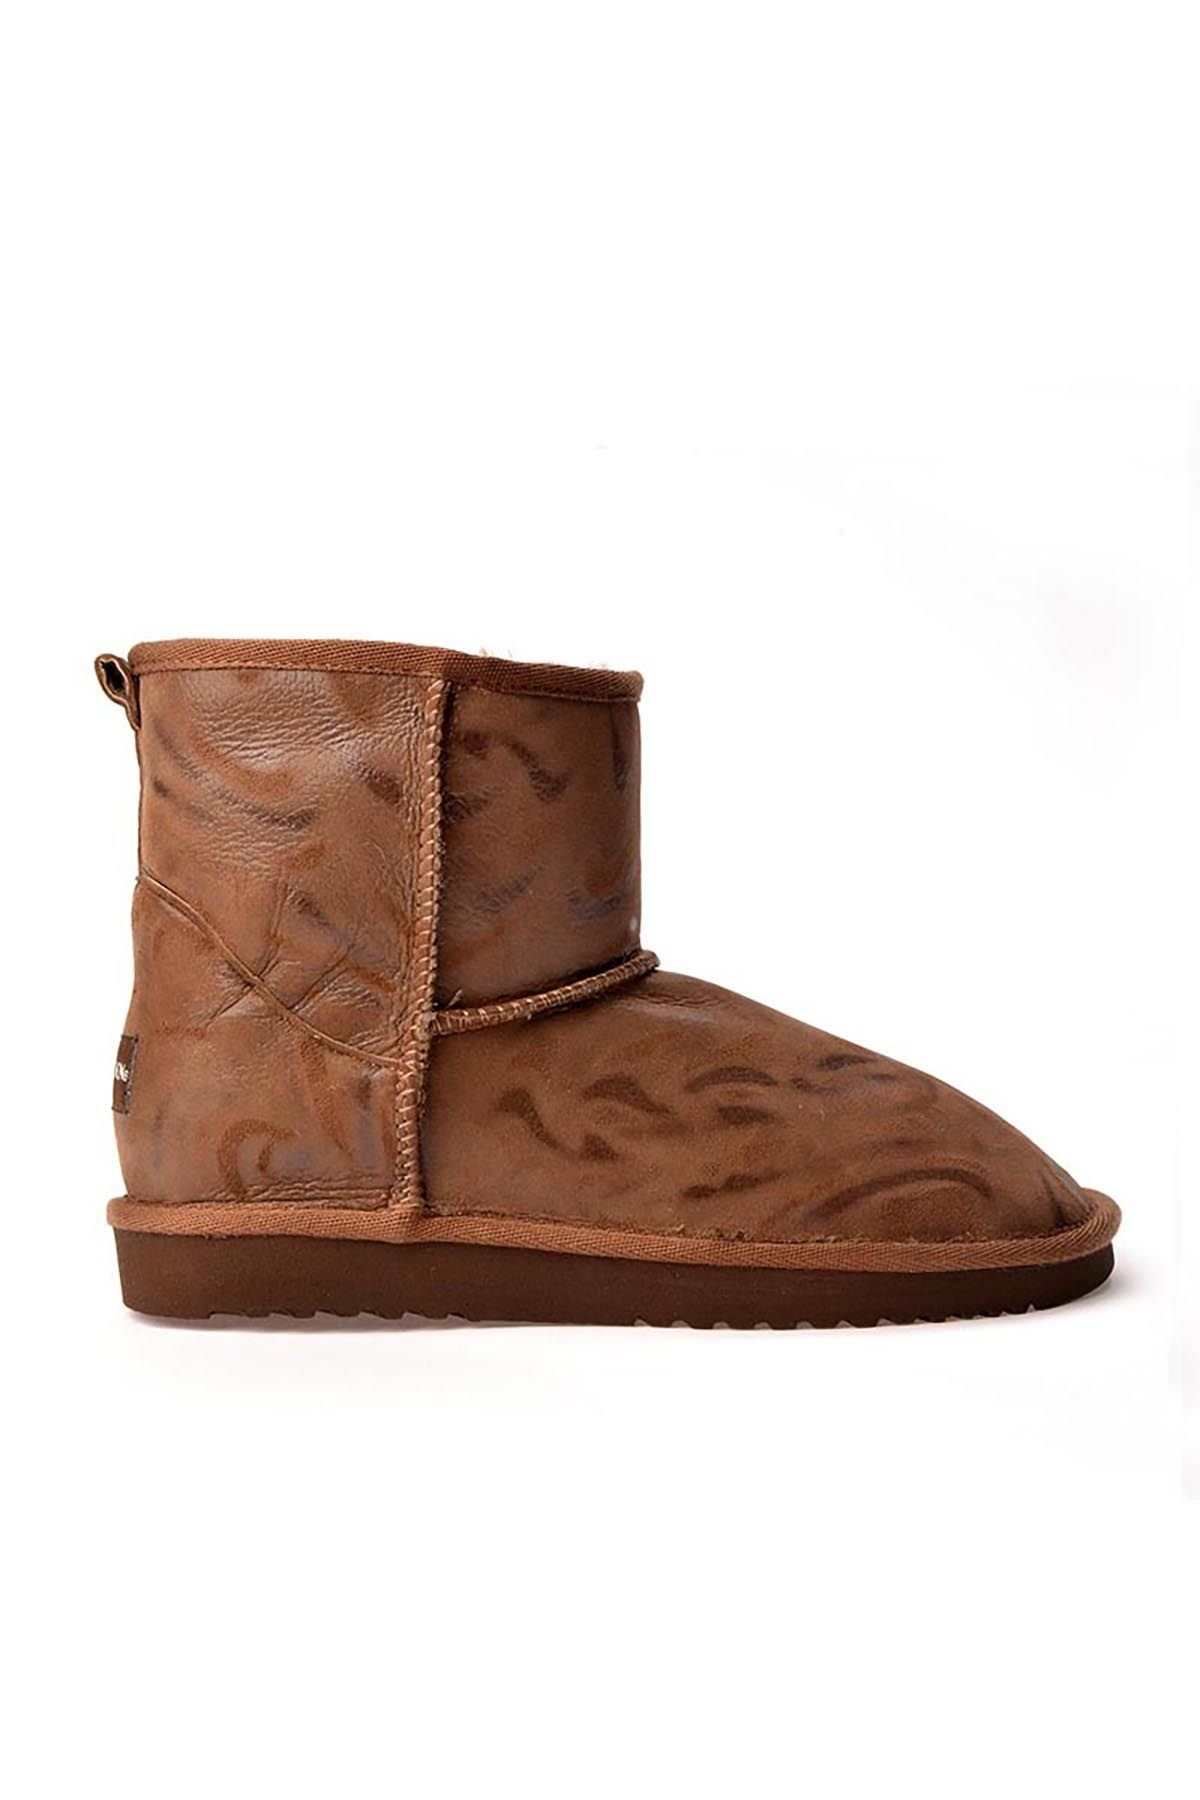 Cool Moon Patterned Women Boots From Genuine Fur Brown